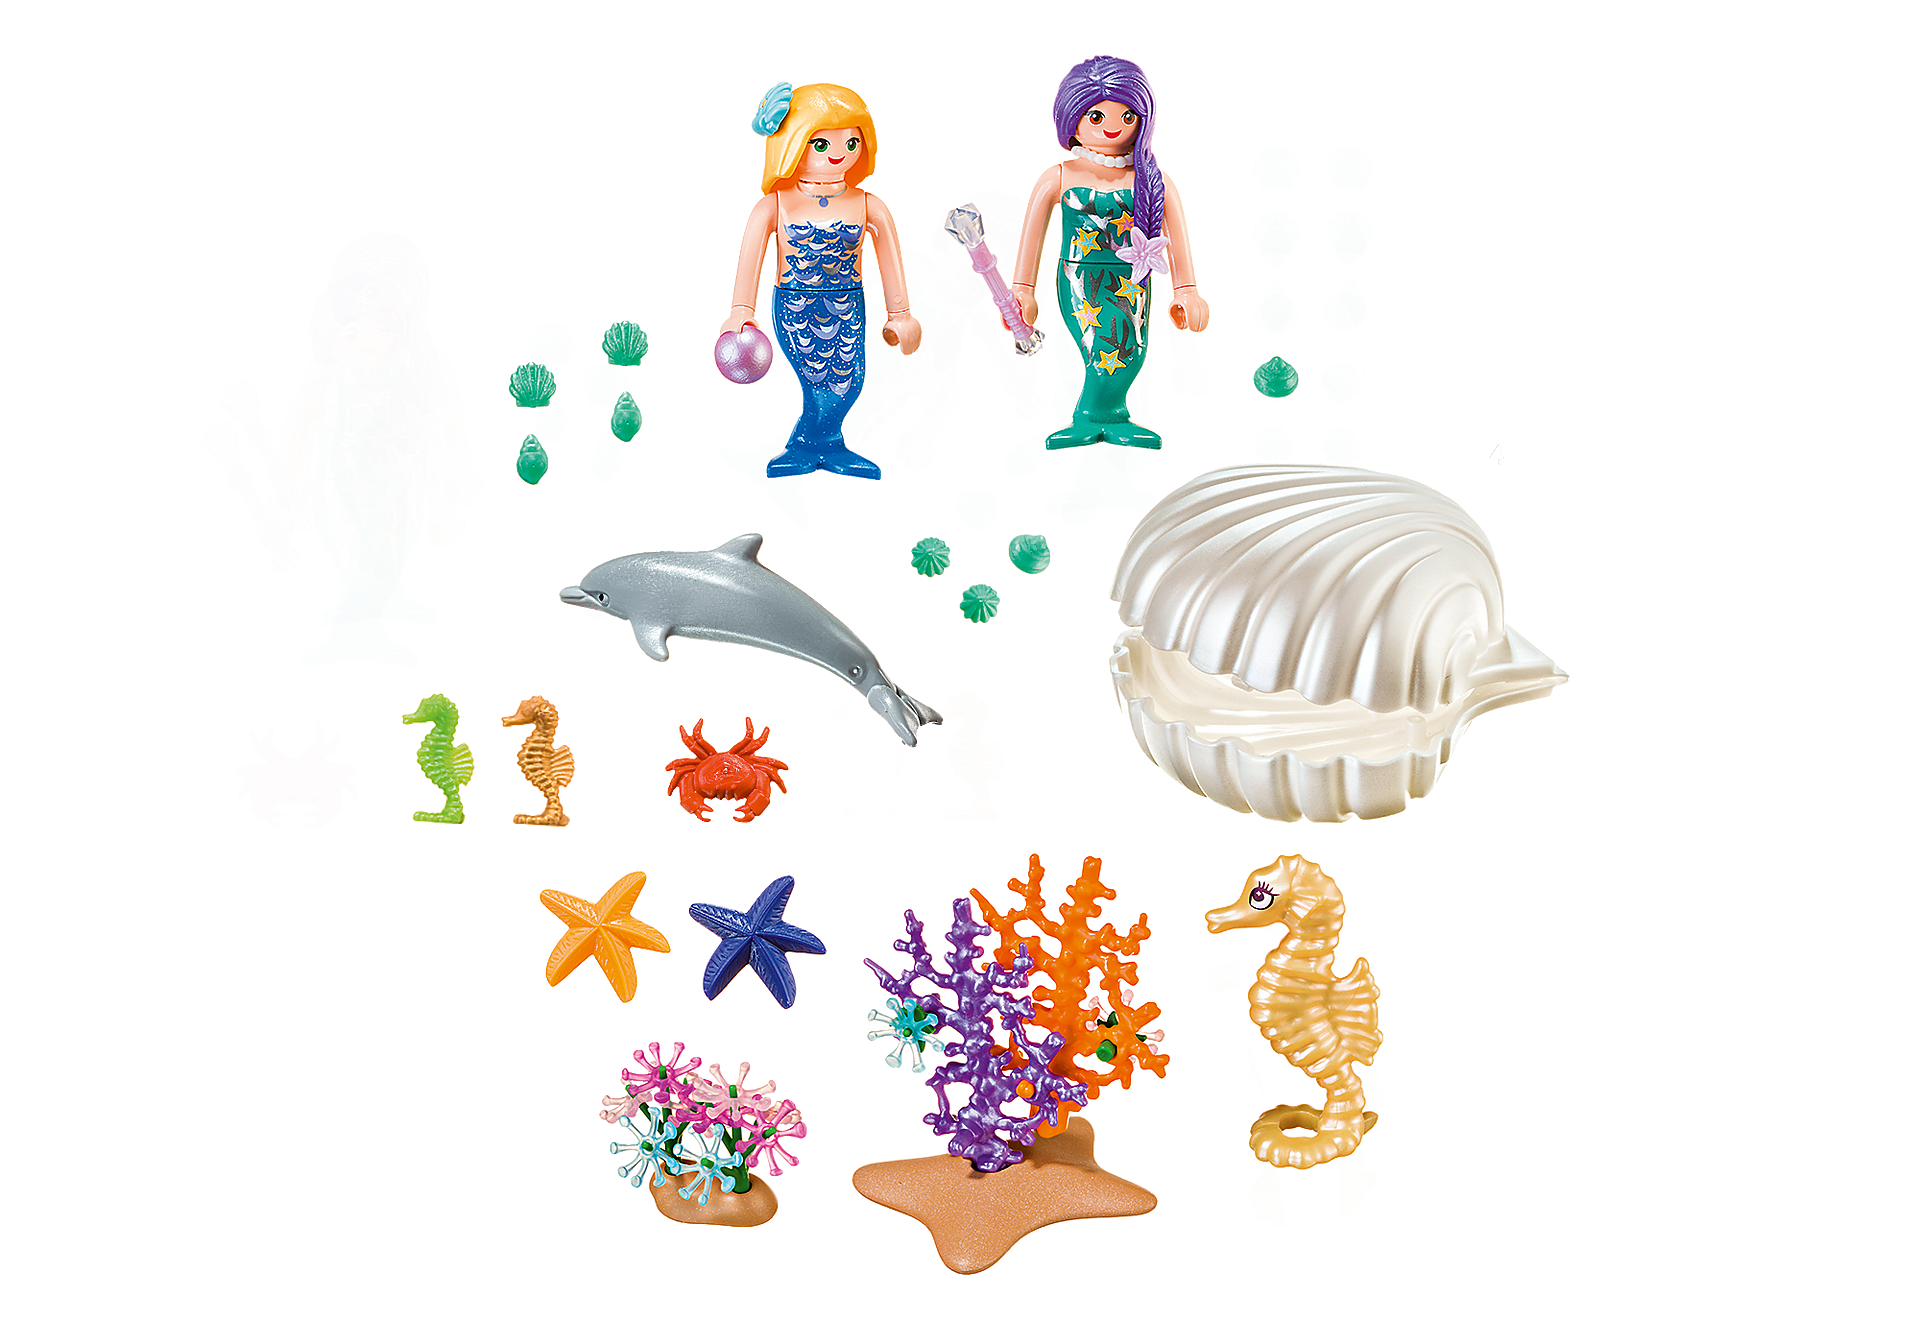 9324 Magical Mermaids Carry Case zoom image3